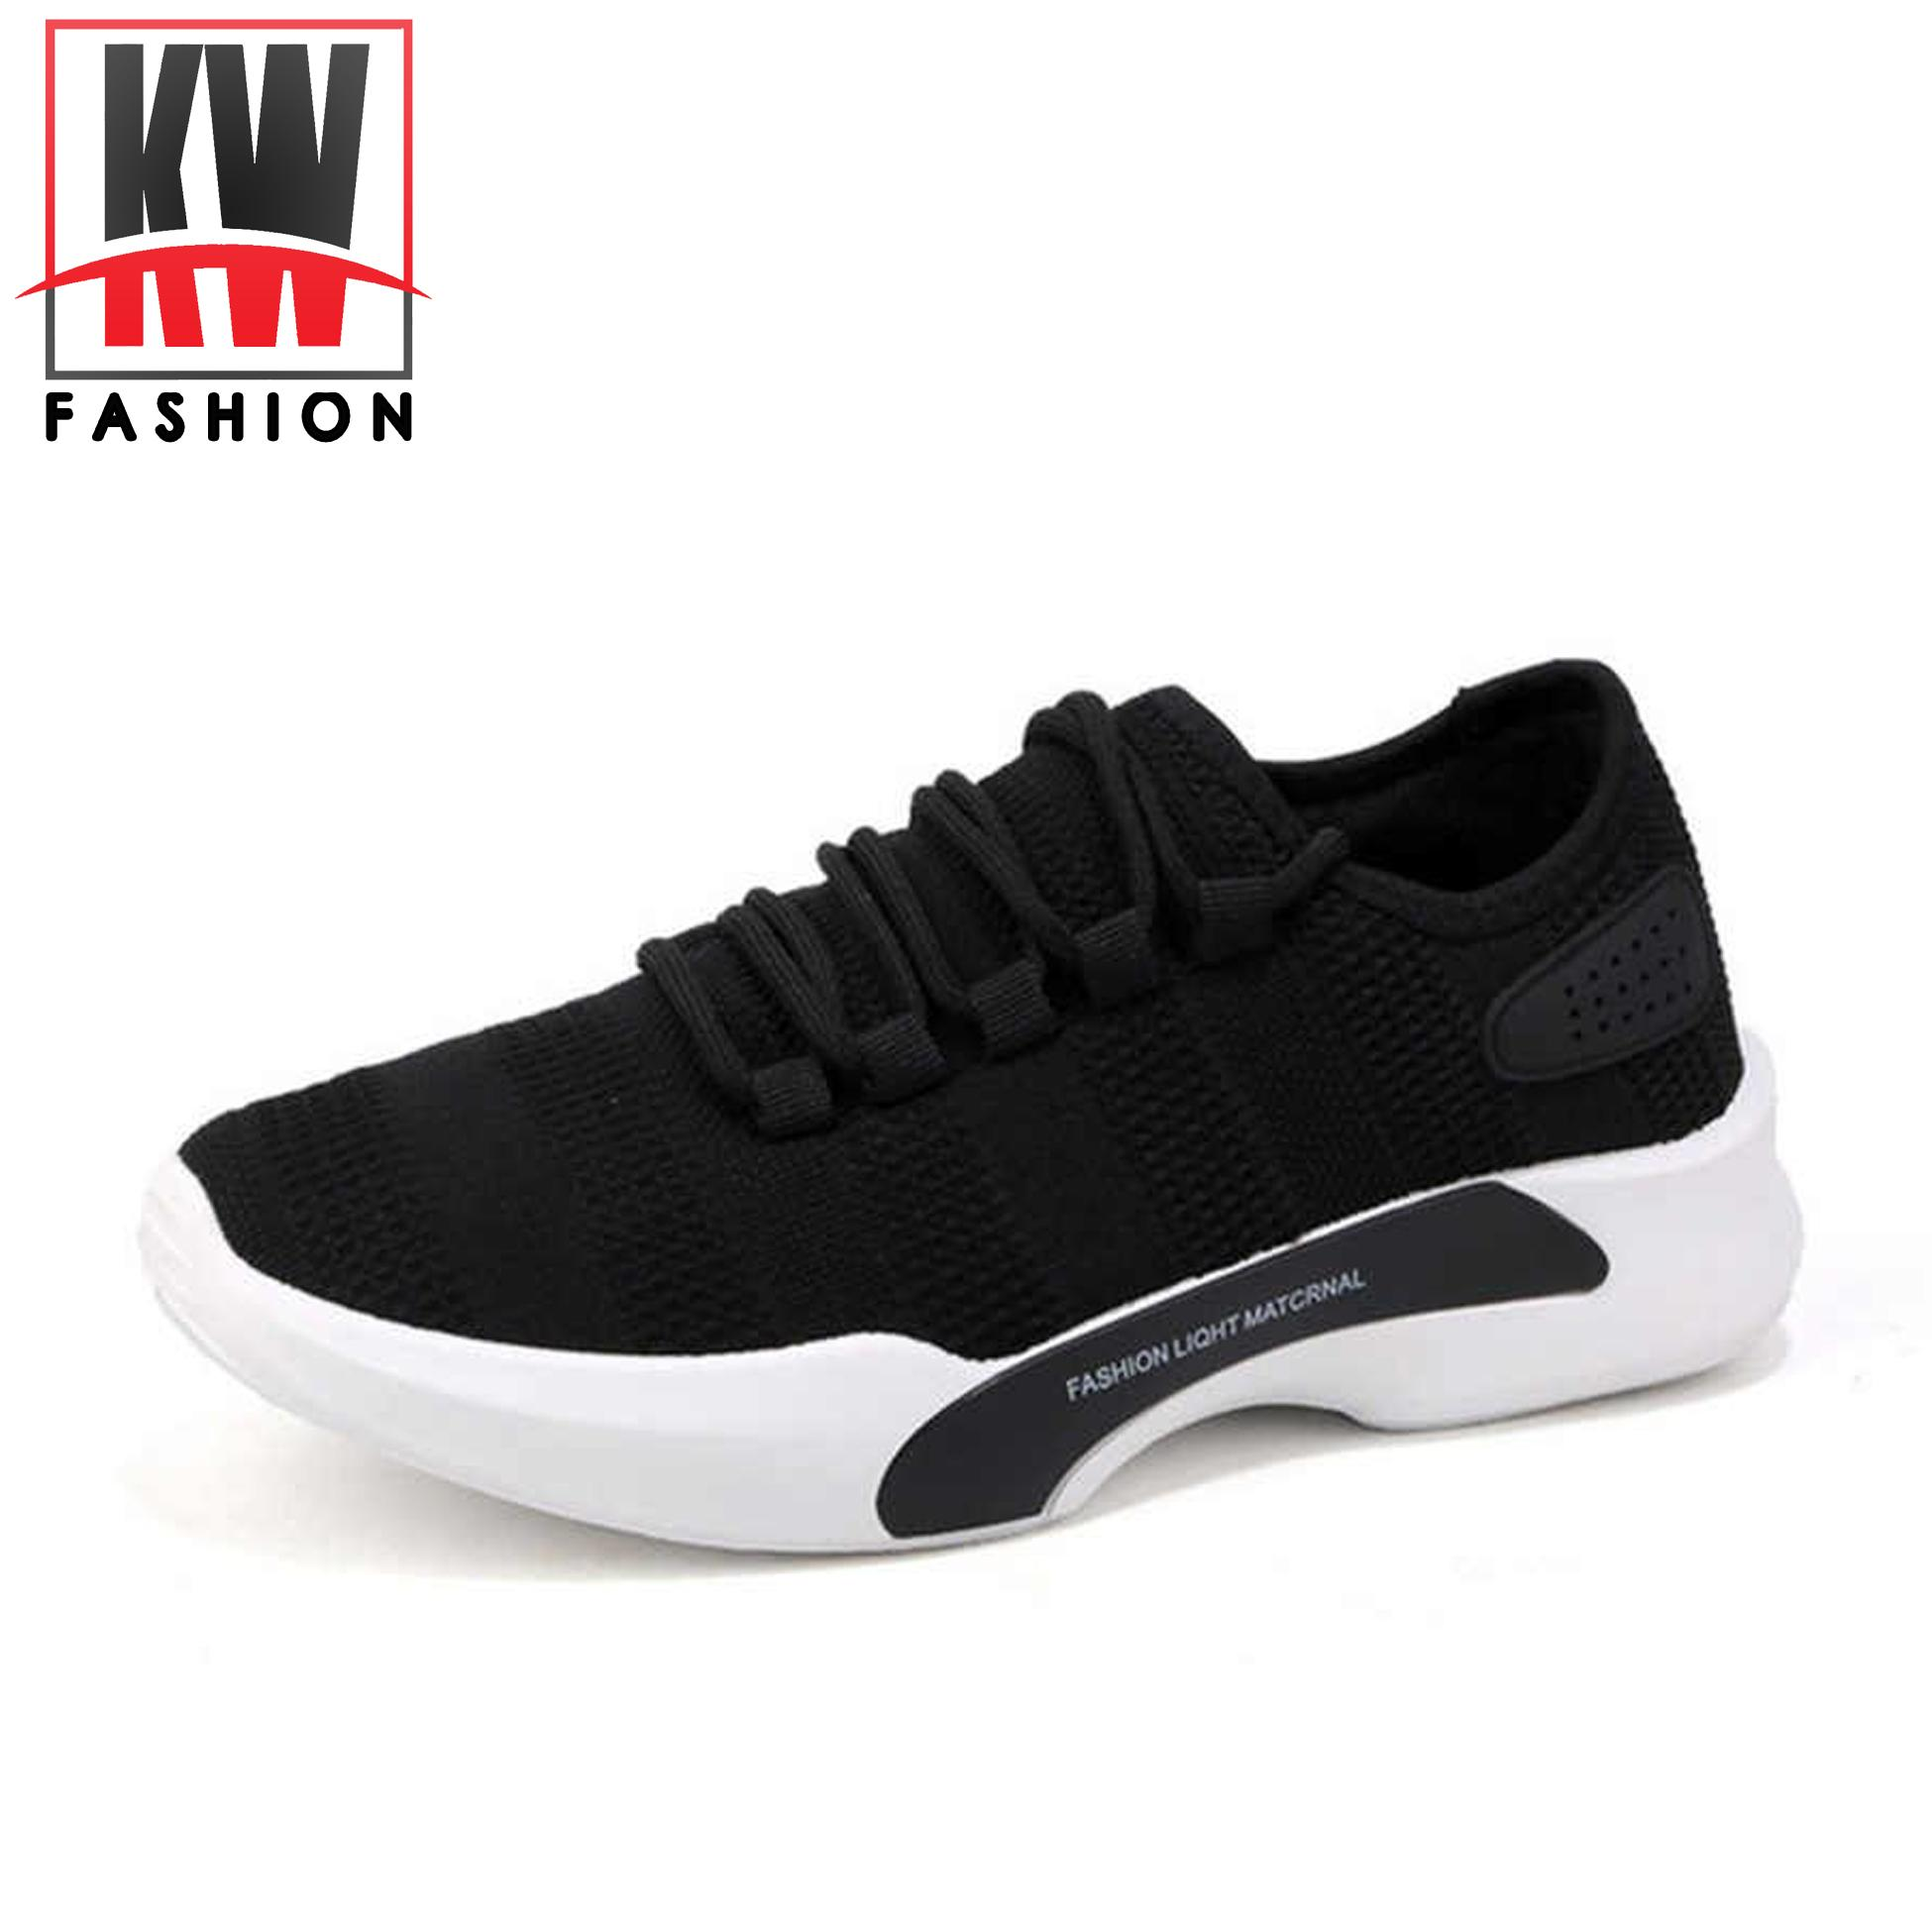 ba4f09c151 Shoes for Men for sale - Mens Fashion Shoes online brands